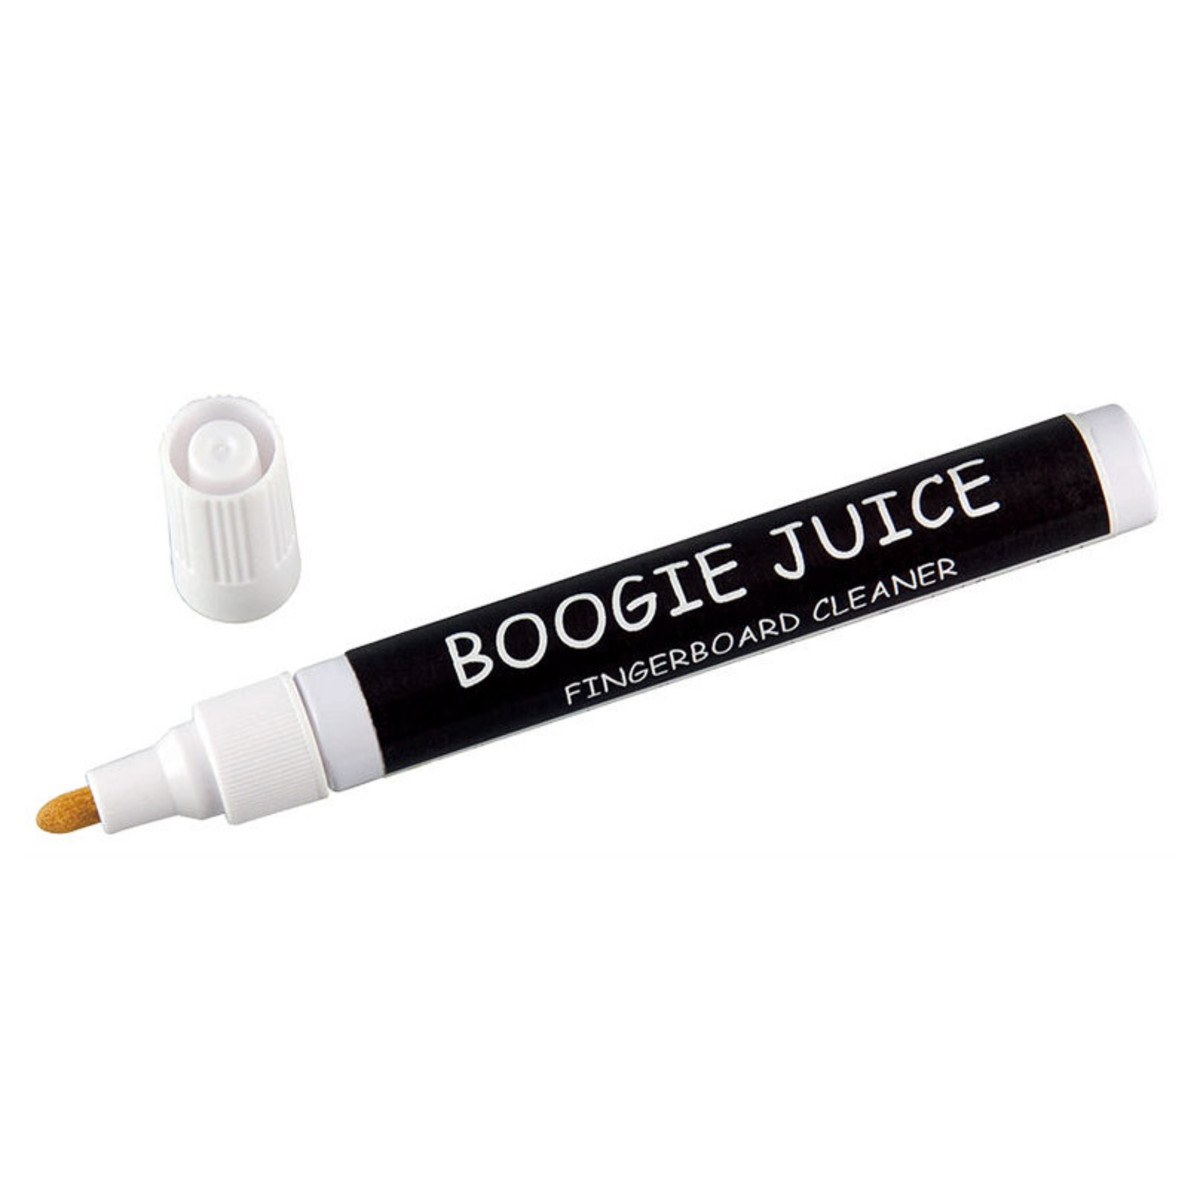 Image of Boogie Juice Fingerboard Cleaner for Ukulele or Guitar